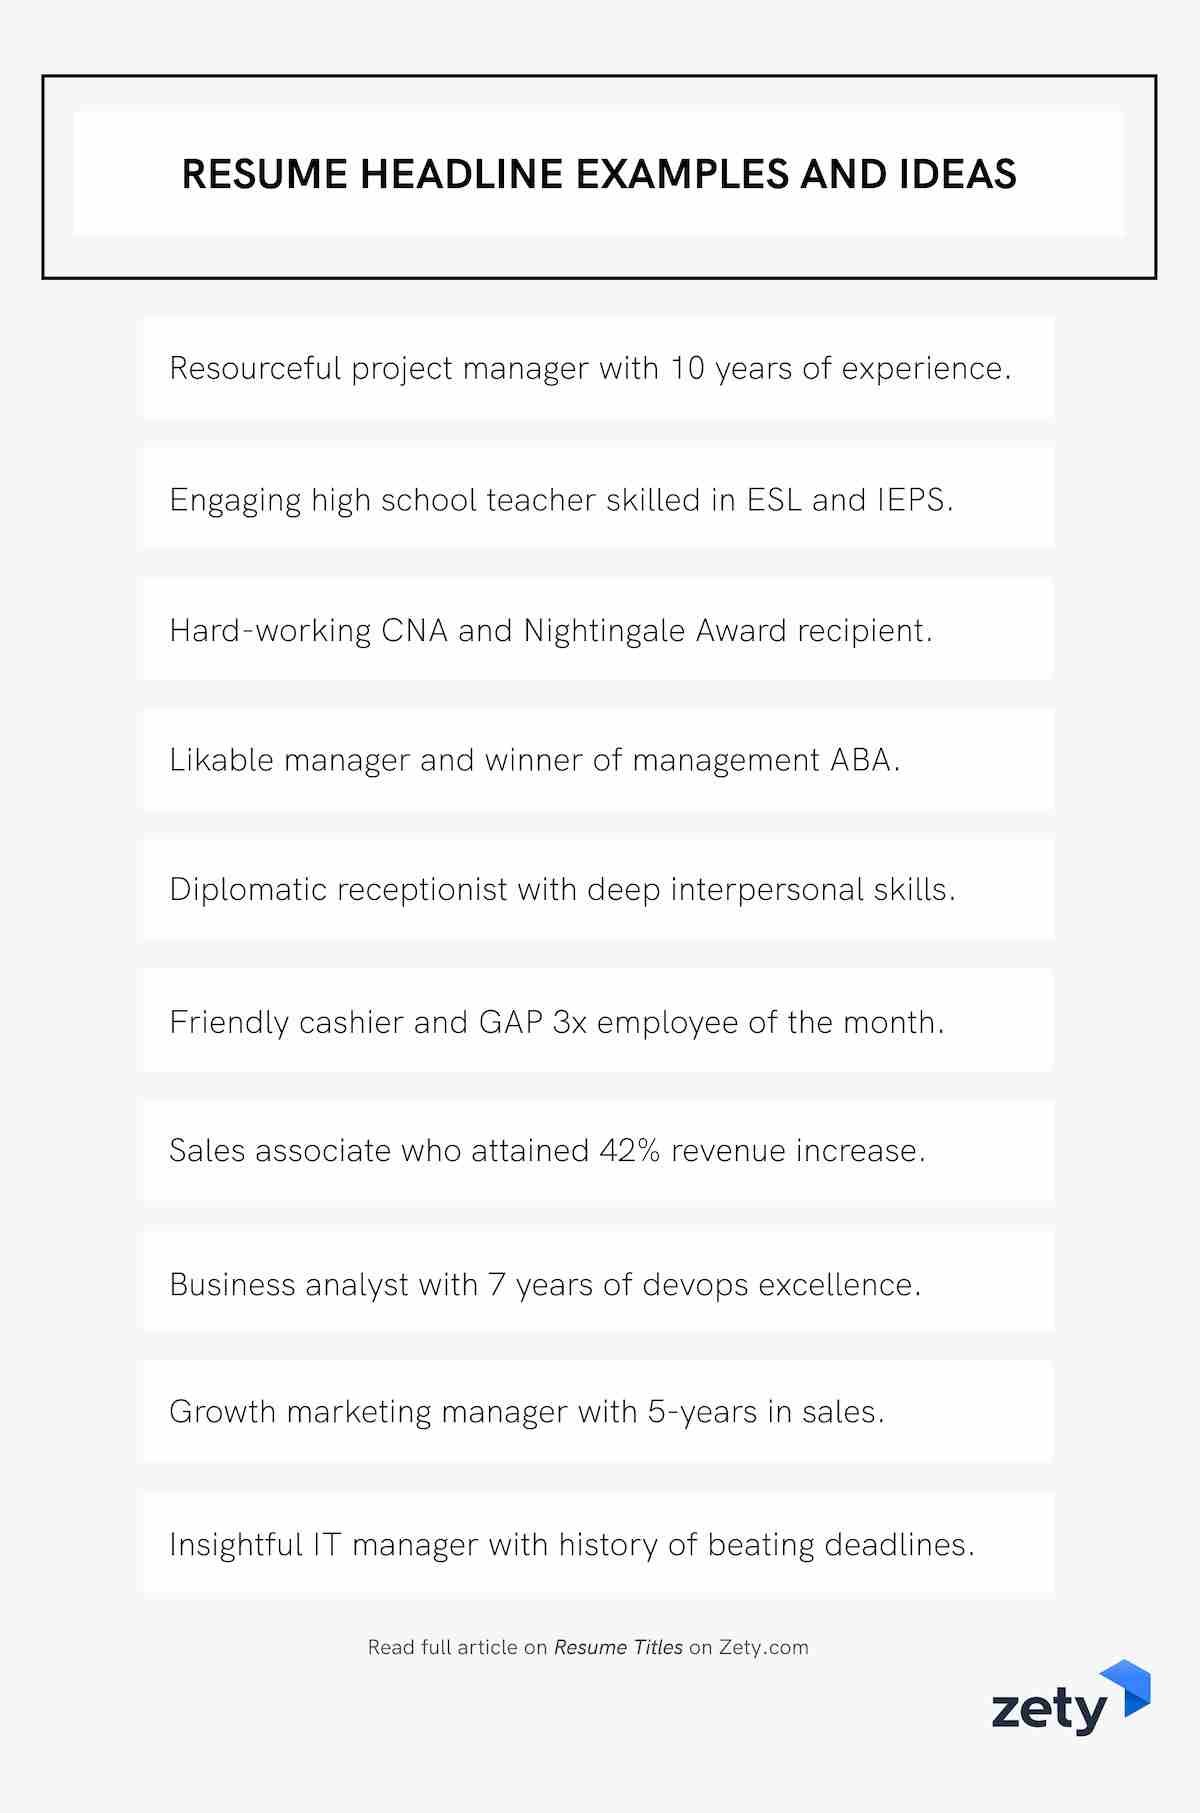 resume title examples good headline for any heading and ideas skills security sap basis Resume Good Heading For A Resume